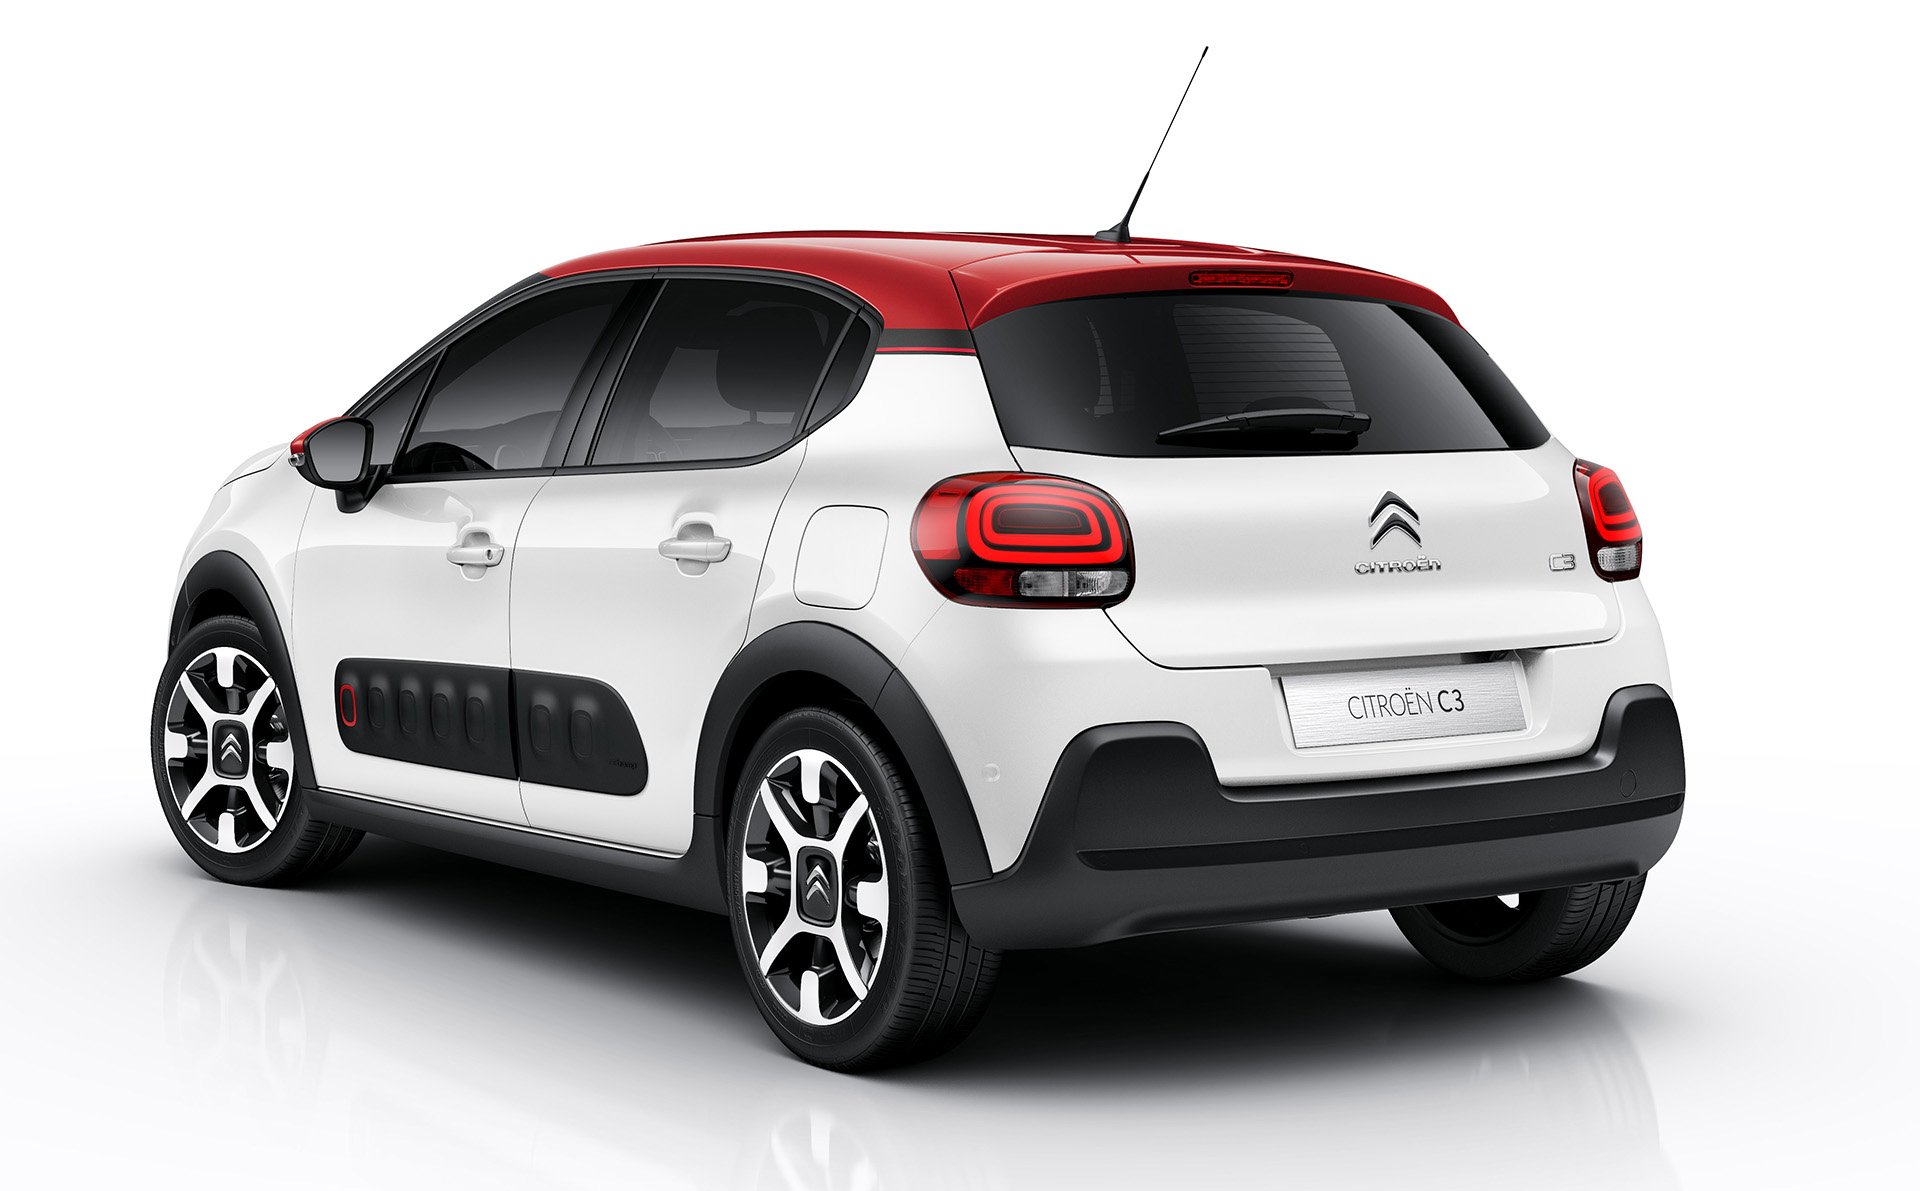 yeni kasa citroen c3 cactus. Black Bedroom Furniture Sets. Home Design Ideas